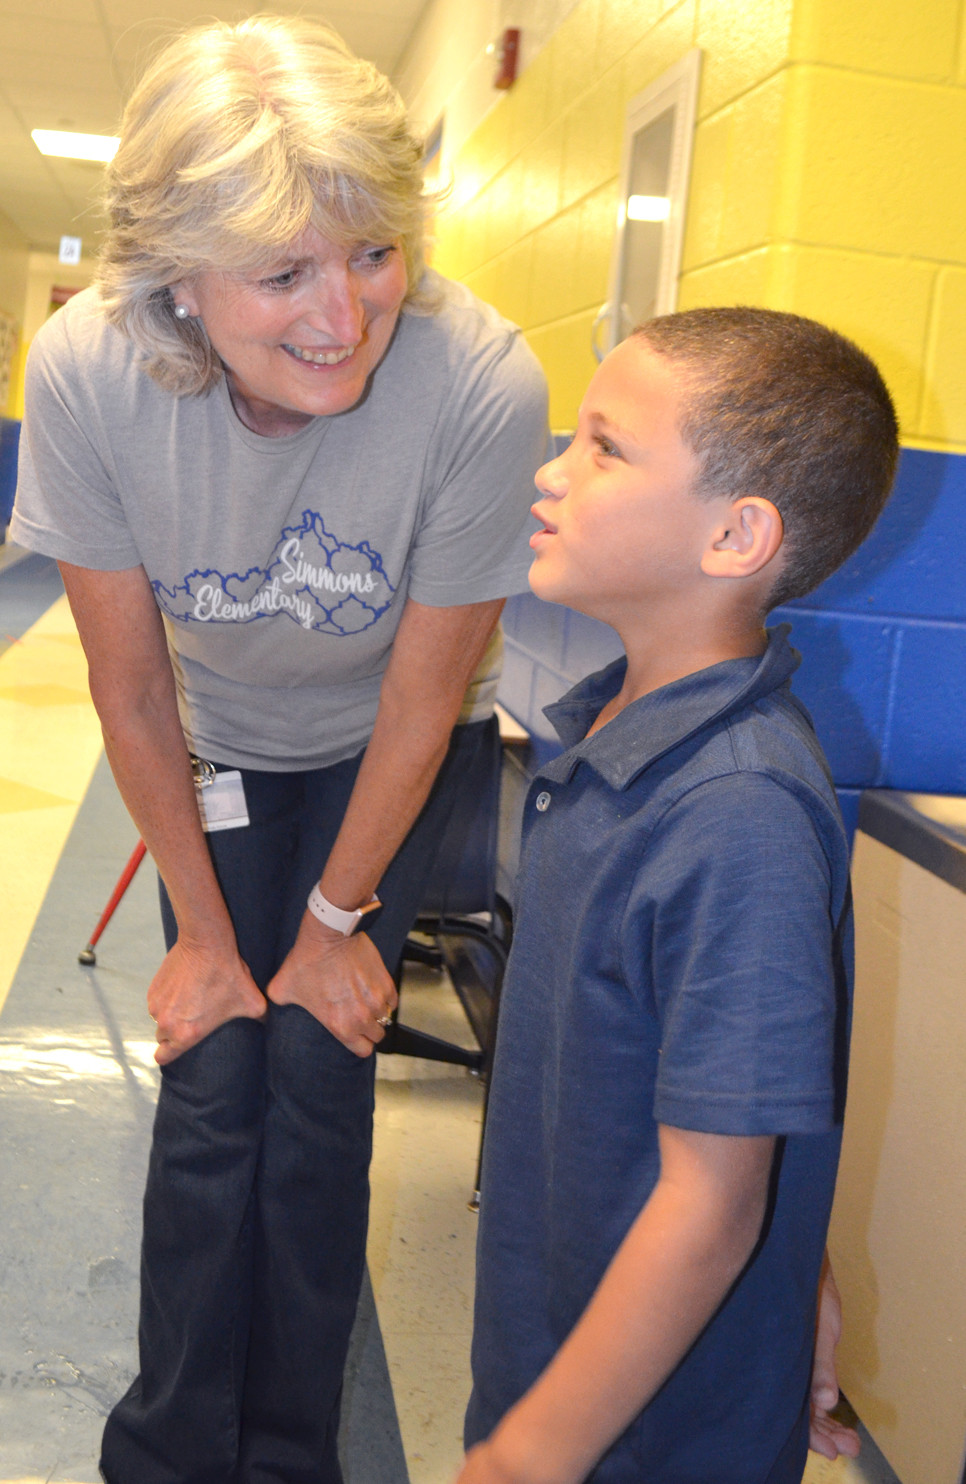 """BARB RUSH talked to kindergartner Levi Johnson outside their classroom at Simmons Elementary School recently. """"Relationships are so important with them,"""" says Rush, who began her 19th year at Simmons in August. (Photo by Bob Vlach)"""